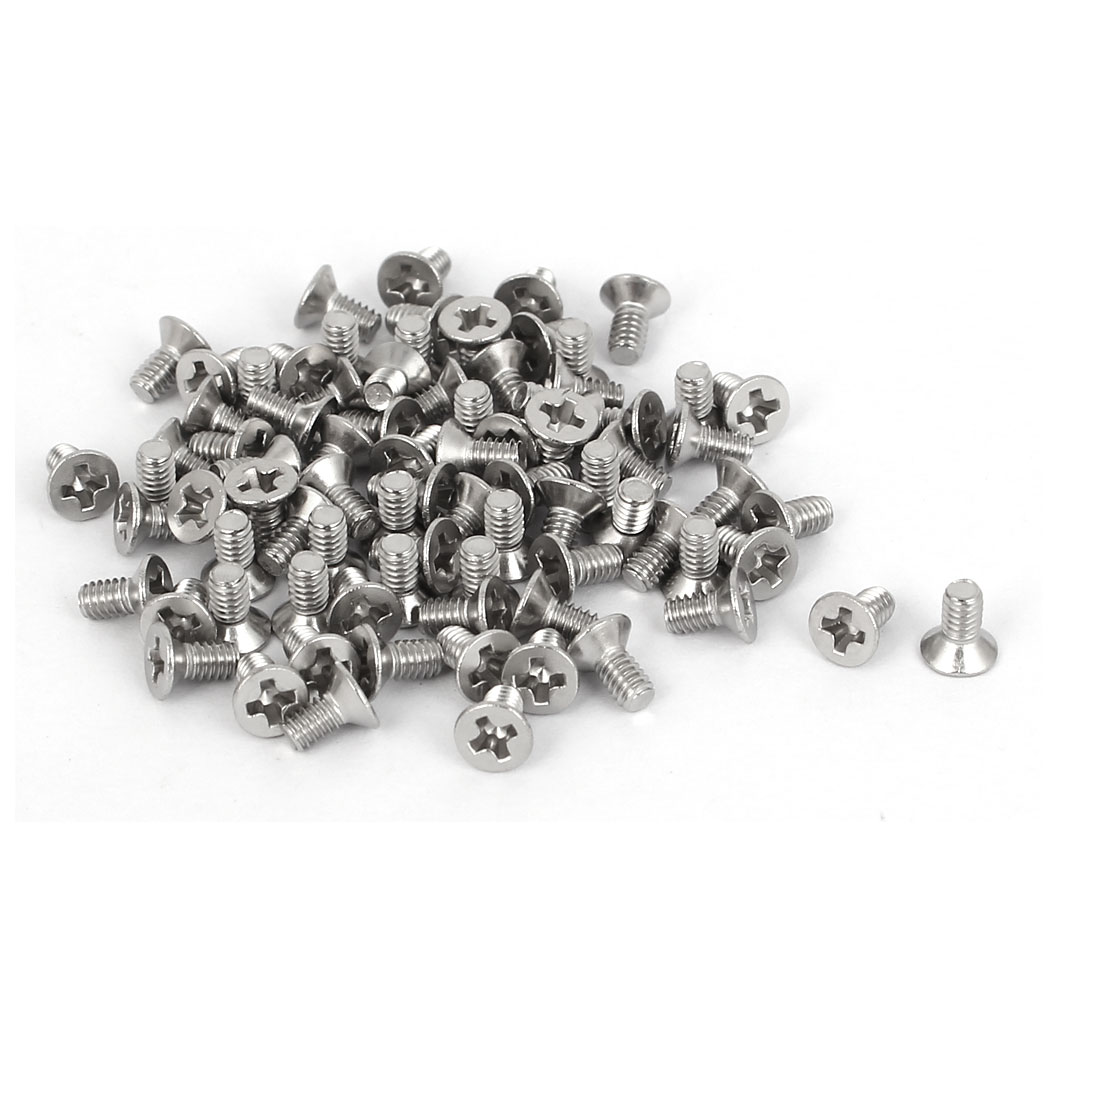 80 Pcs M2x4mm 316 Stainless Steel Flat Head Phillips Machine Screws Bolts